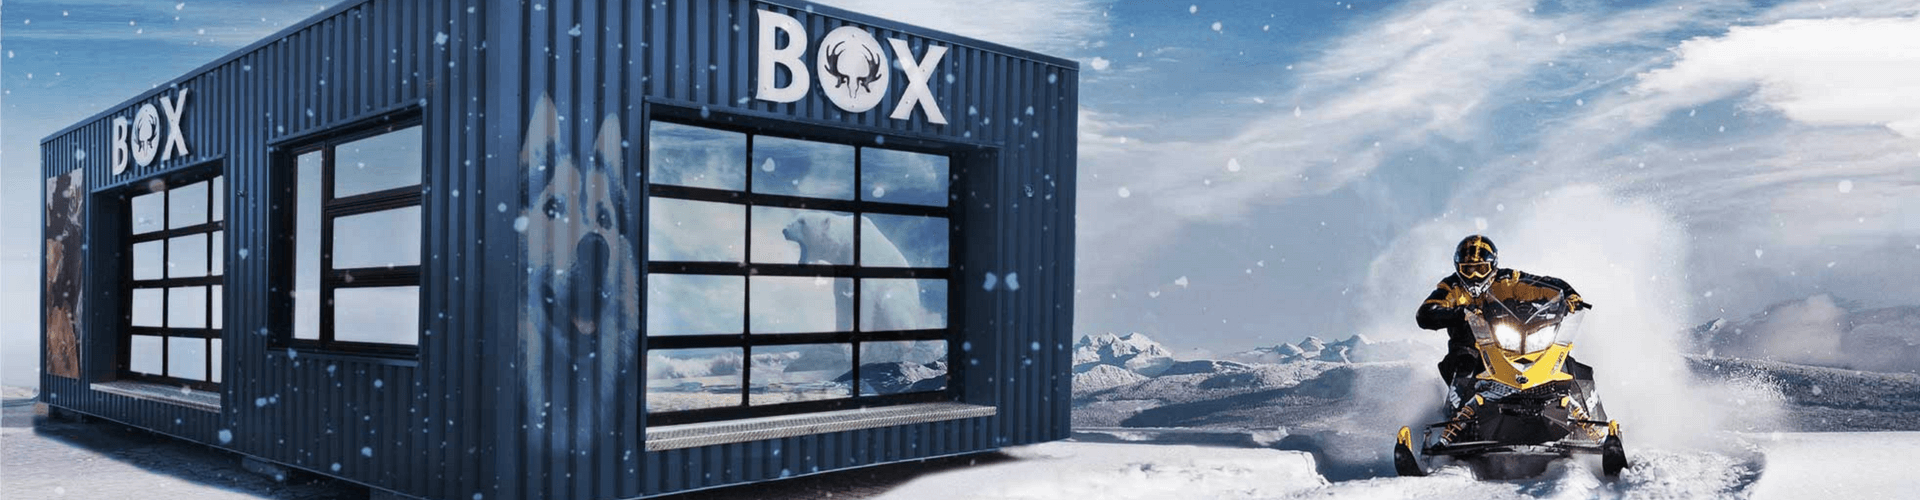 coolbox arctique